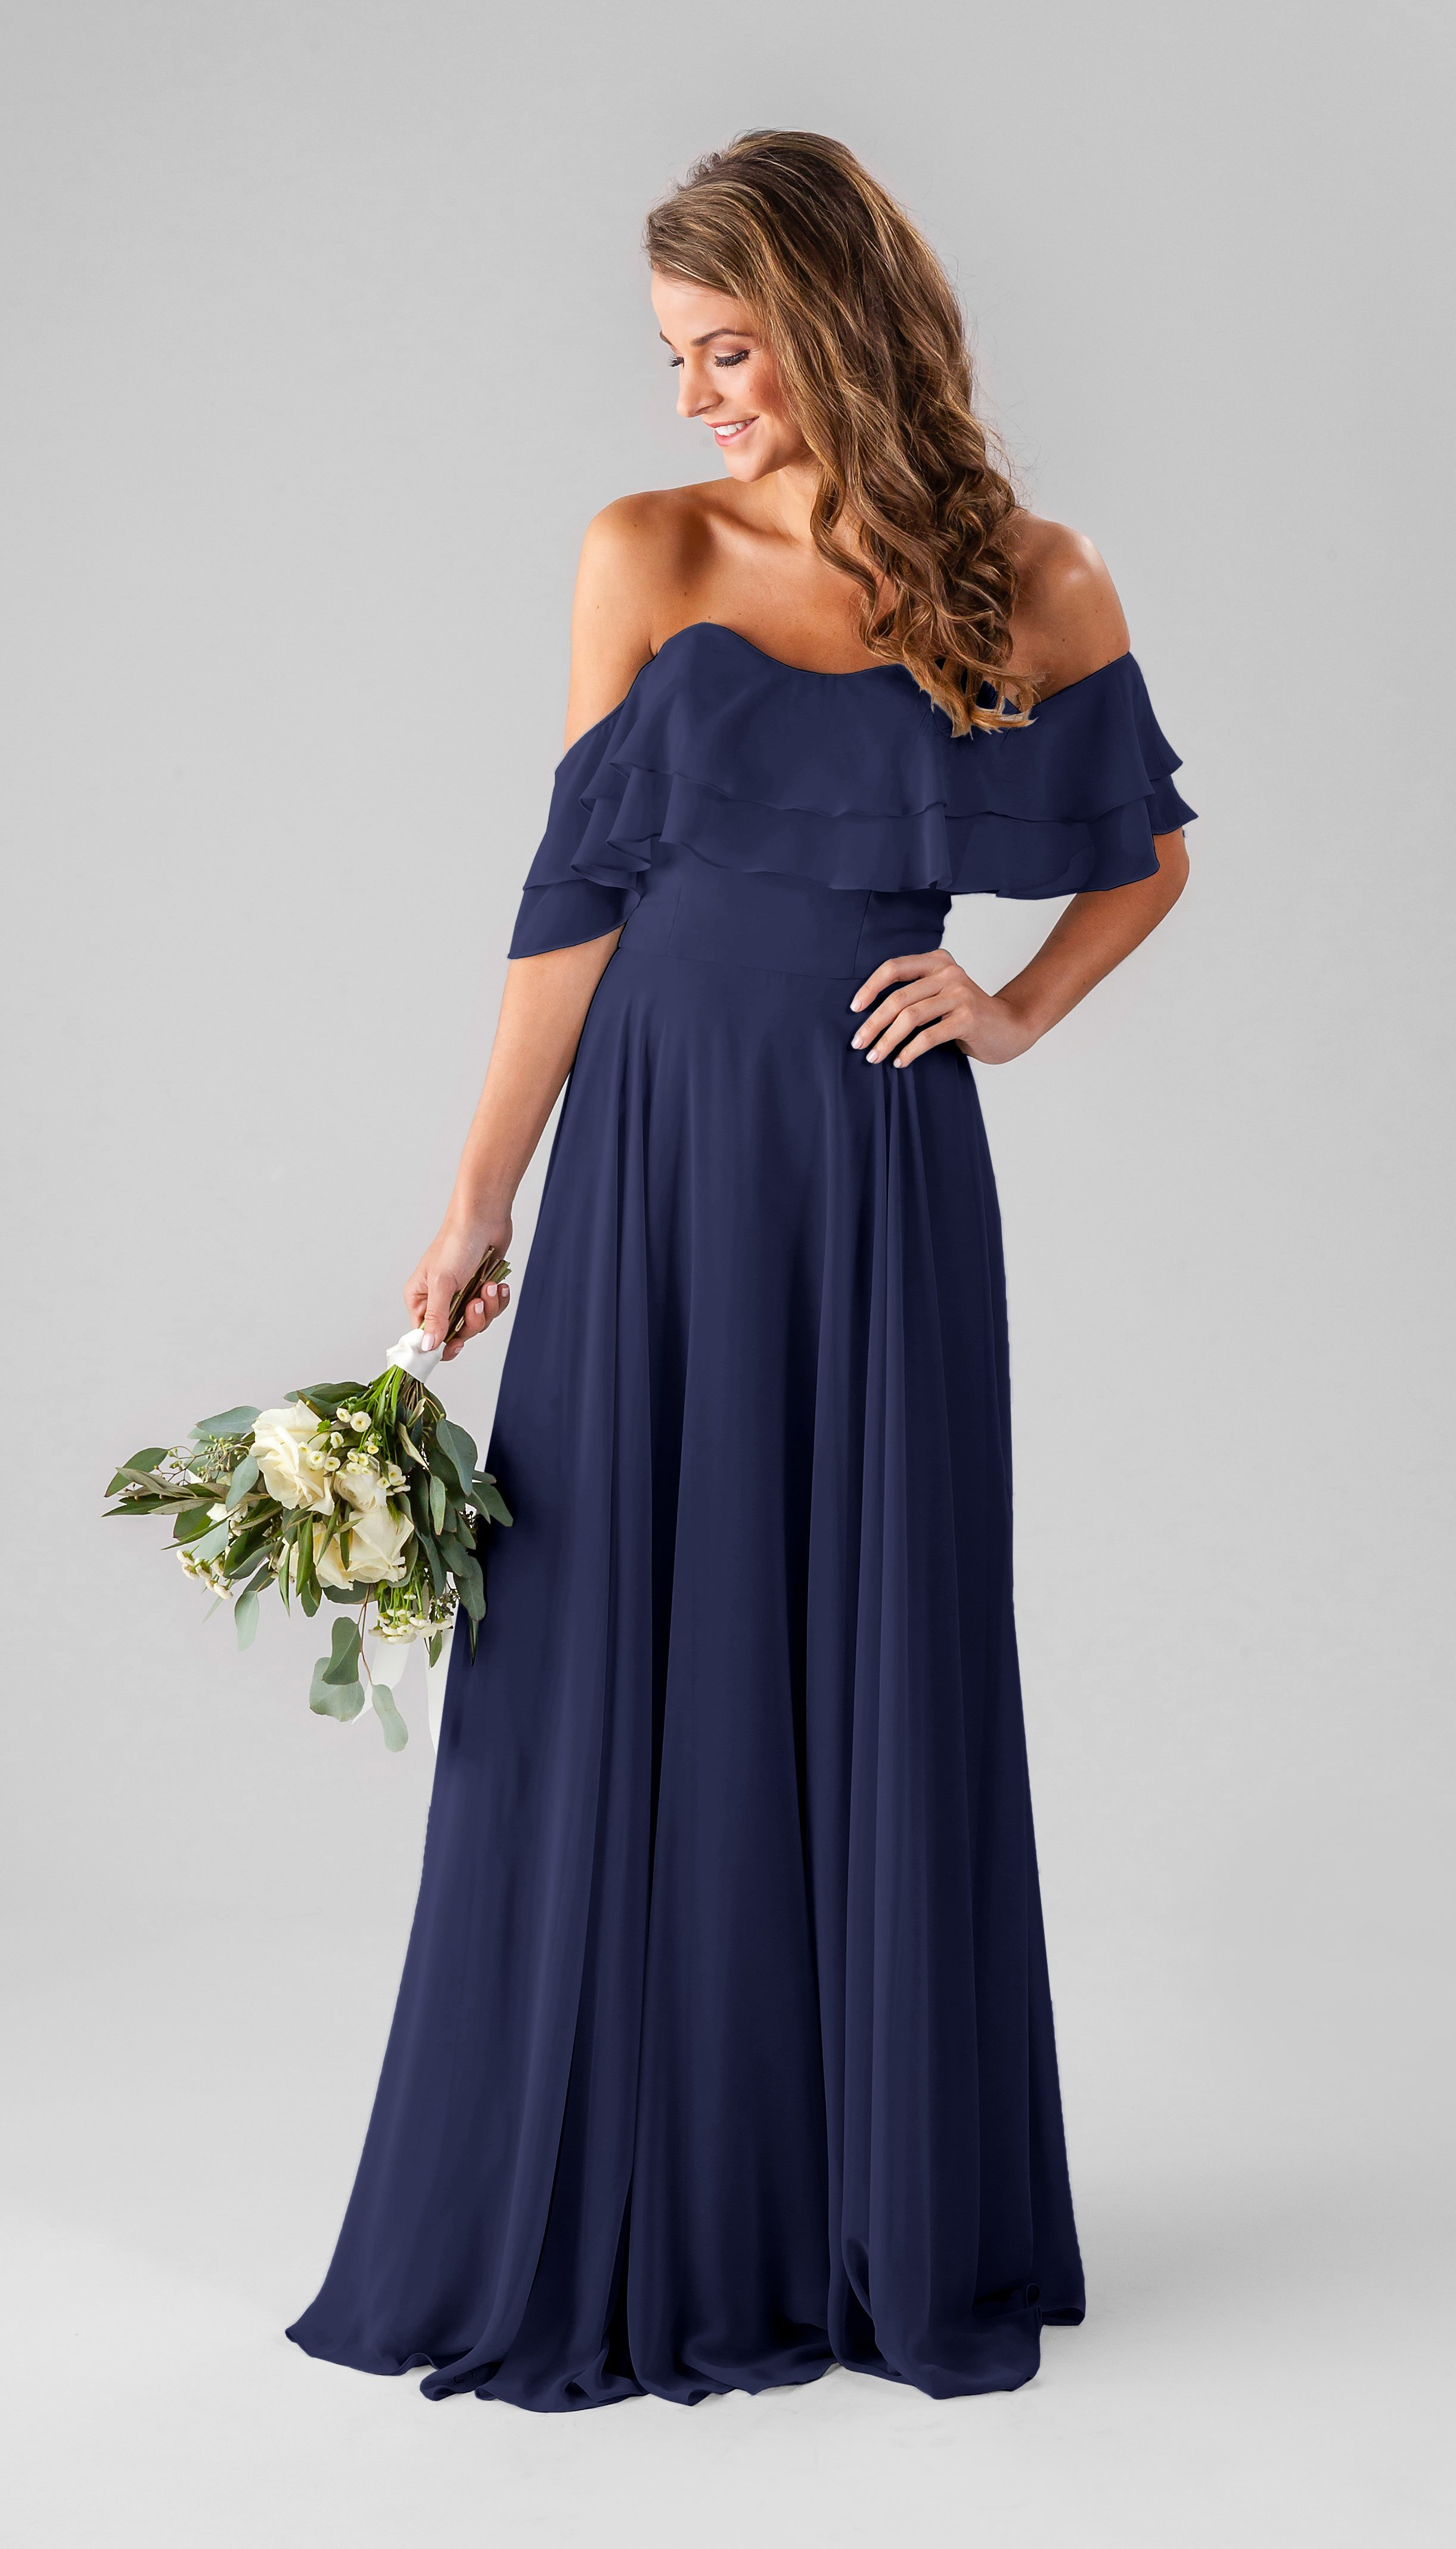 ruffled-off-the-shoulder-bridesmaid-dress-kennedy-blue